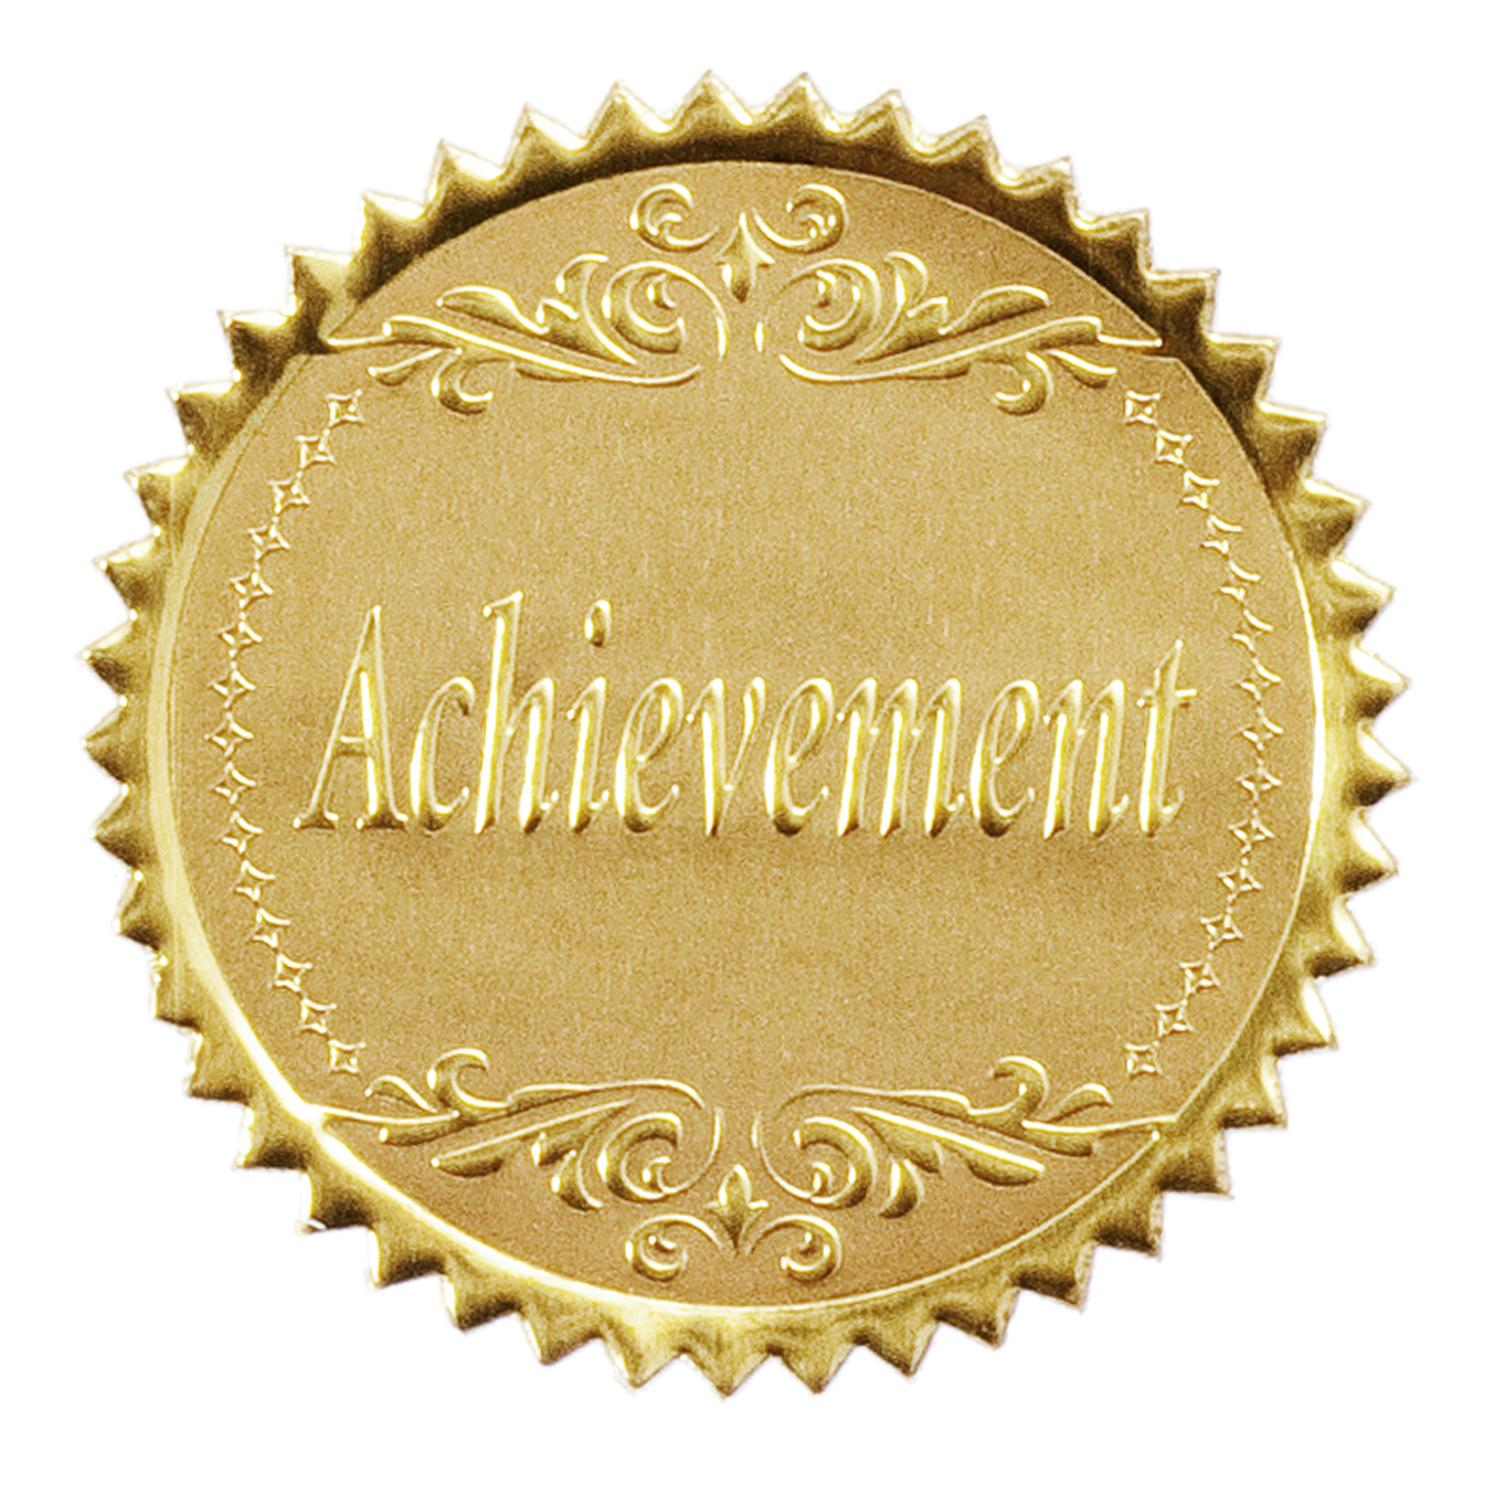 Achievement sticker